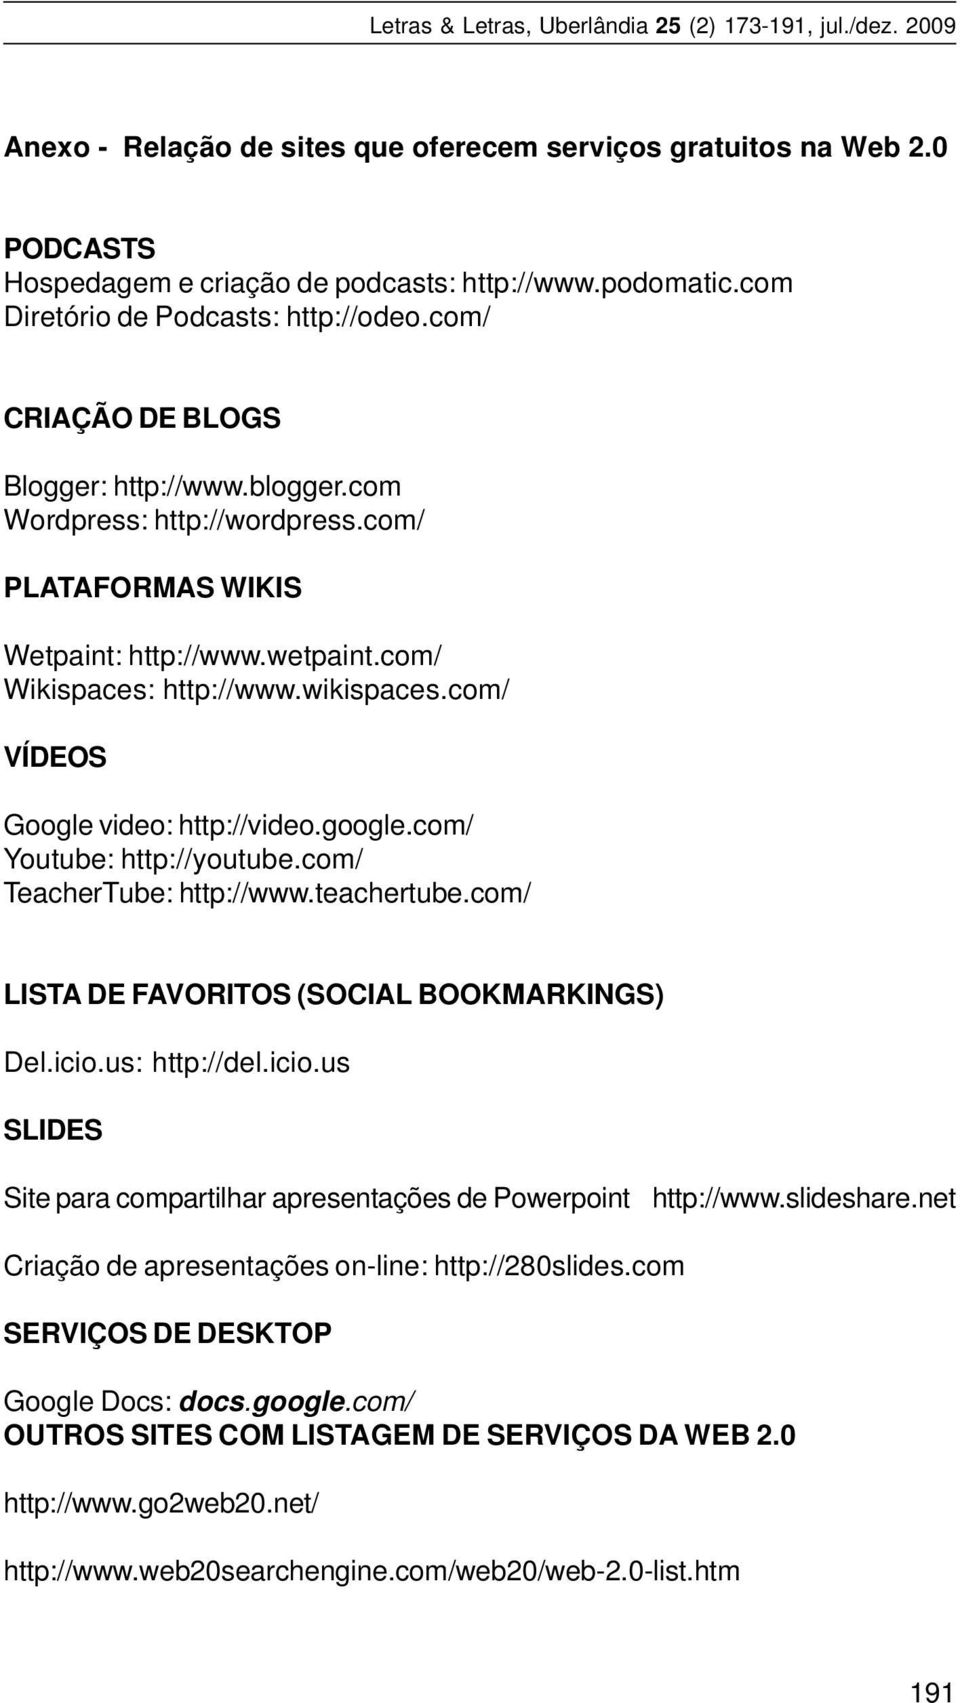 com/ VÍDEOS Google video: http://video.google.com/ Youtube: http://youtube.com/ TeacherTube: http://www.teachertube.com/ LISTA DE FAVORITOS (SOCIAL BOOKMARKINGS) Del.icio.